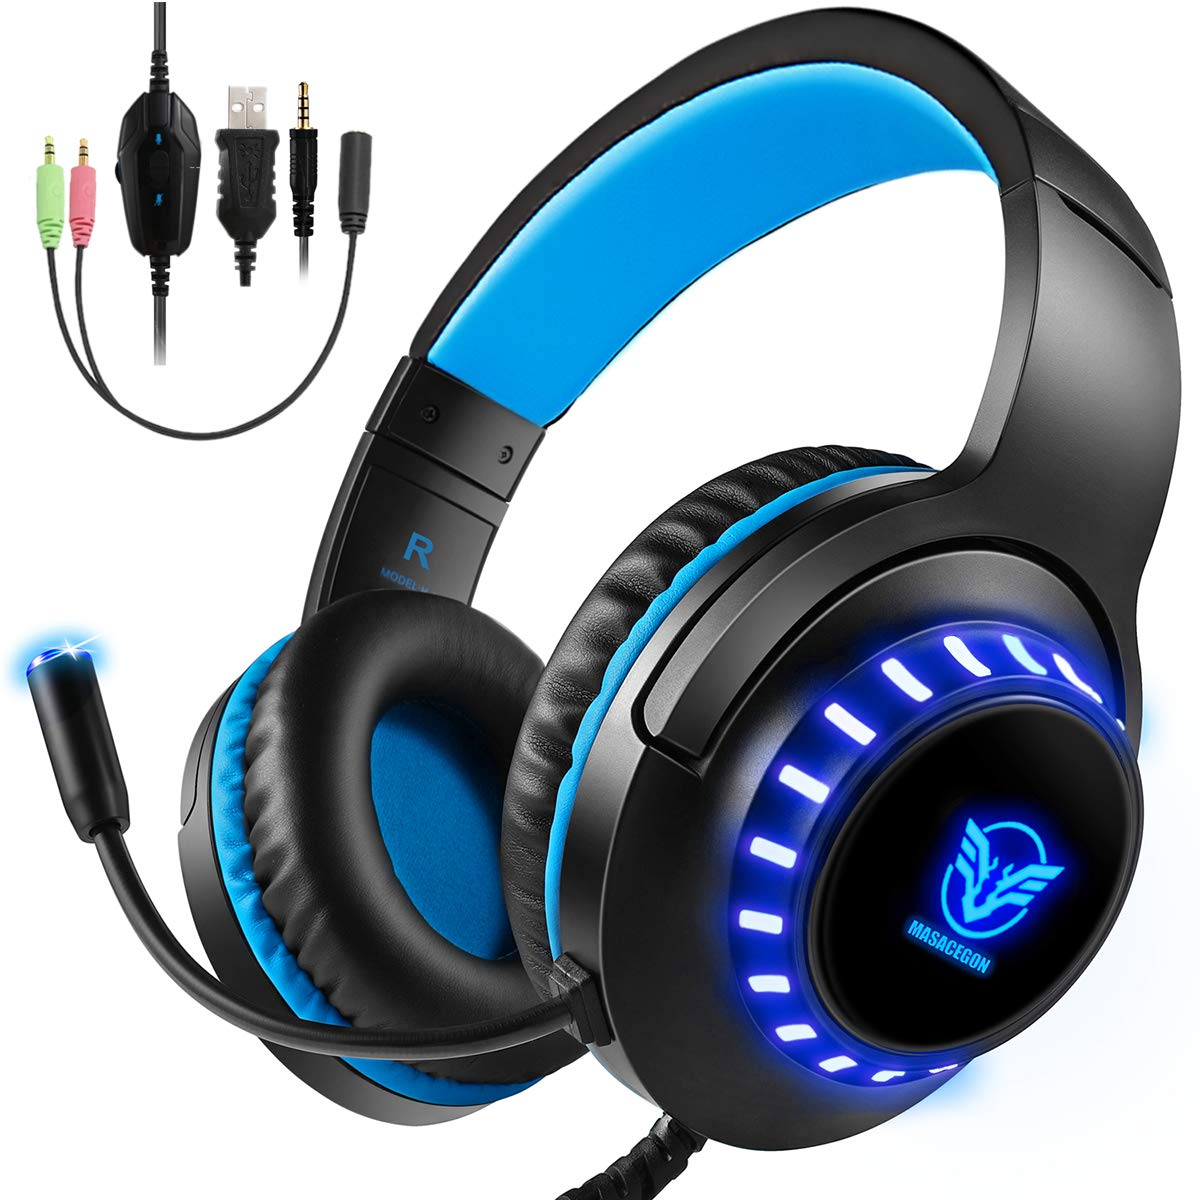 Bovon Compatible with Xbox One Headset Stereo Gaming Headset for PS4, PC, Lightweight Over Ear Headphones with LED Light, Noise Canceling Mic, Adjustable Headband, Soft Memory Earmuffs